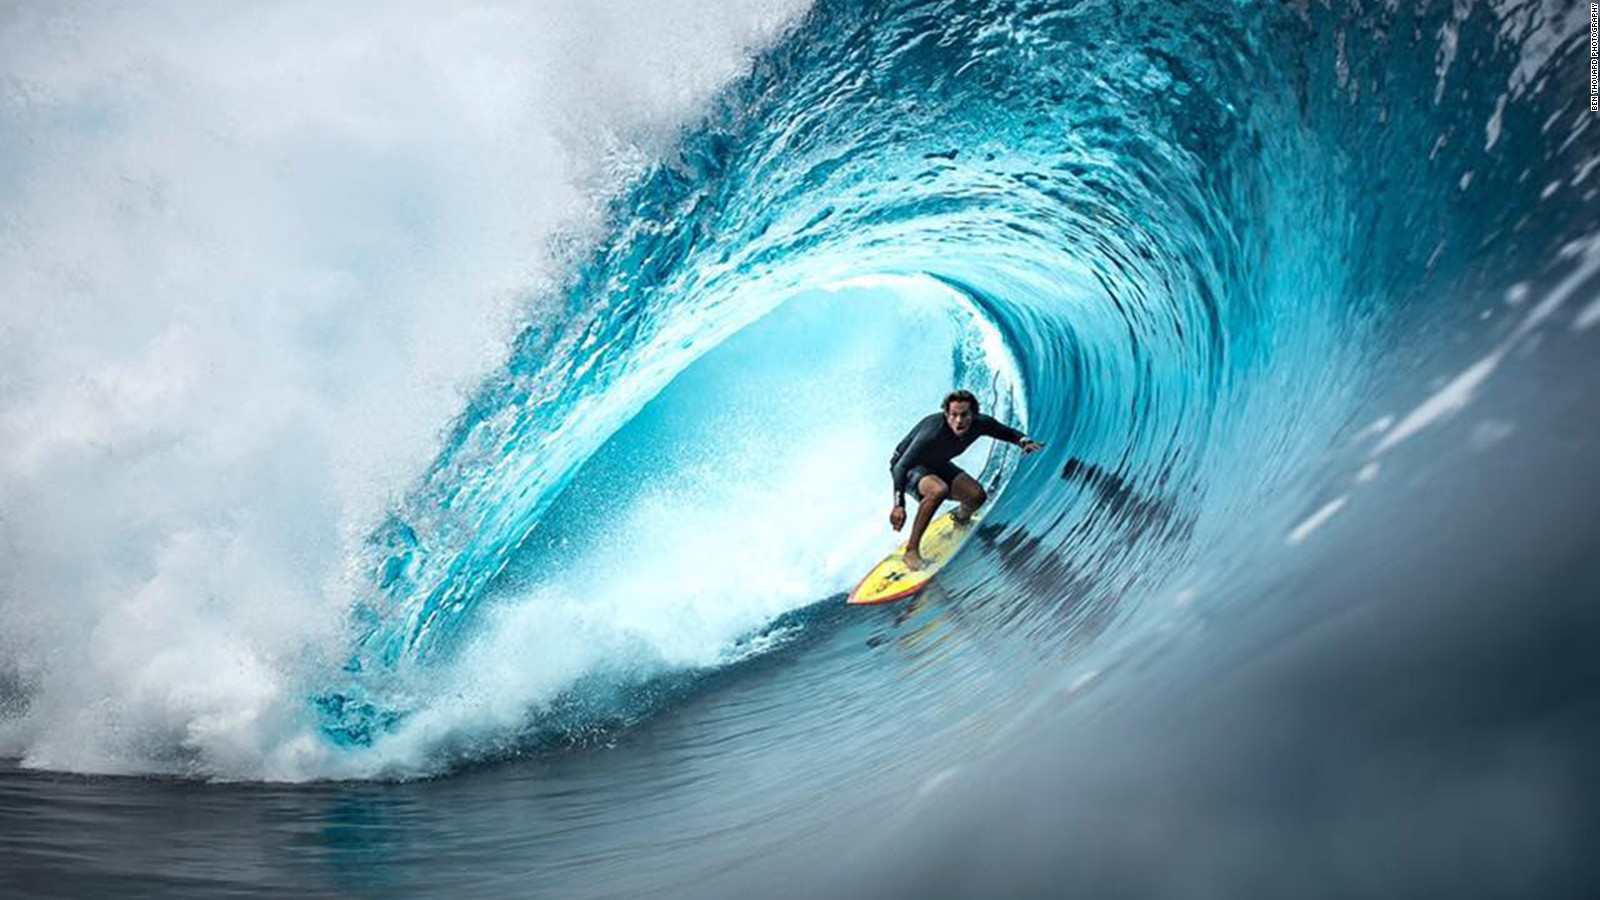 nic von rupp the big wave surfer with a fear of rocks and being